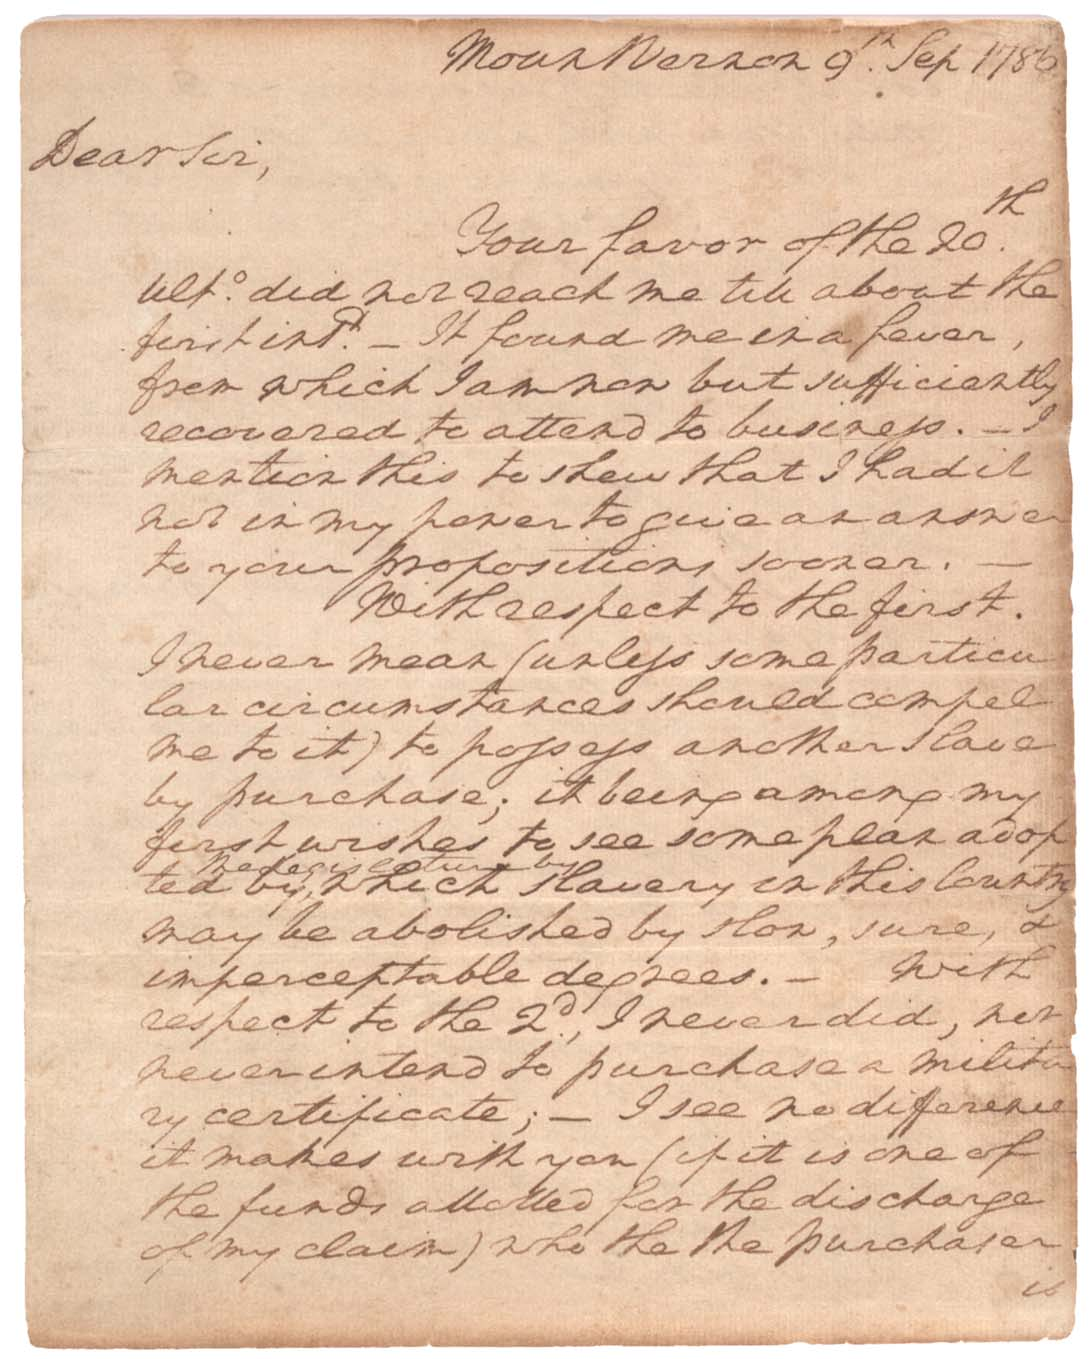 George Washington to John Francis Mercer, September 9, 1786. (Gilder Lehrman